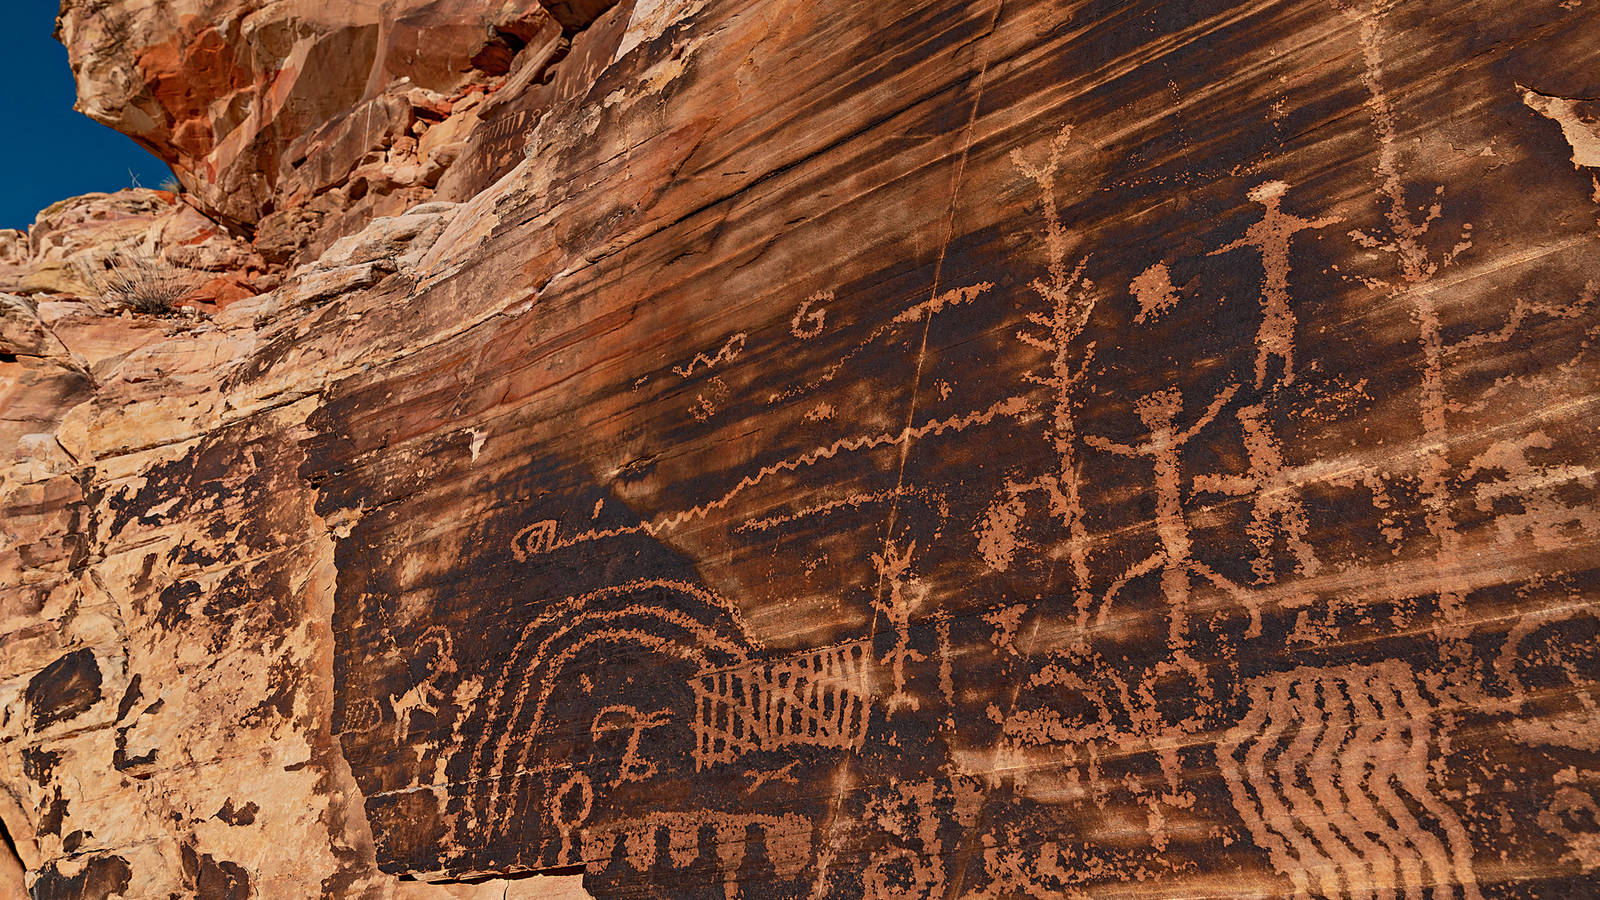 """<h3 style=""""text-align: center; padding: 50px;""""><span class=""""text-Intro-style"""">Gold Butte, one of the country's newest national monuments, was established in 2016 partly because of its exceptional rock art. The Falling Man area features human figures and bighorn sheep, <br />which are common motifs in Southwest rock art. © STEPHEN ALVAREZ</span></h3>"""